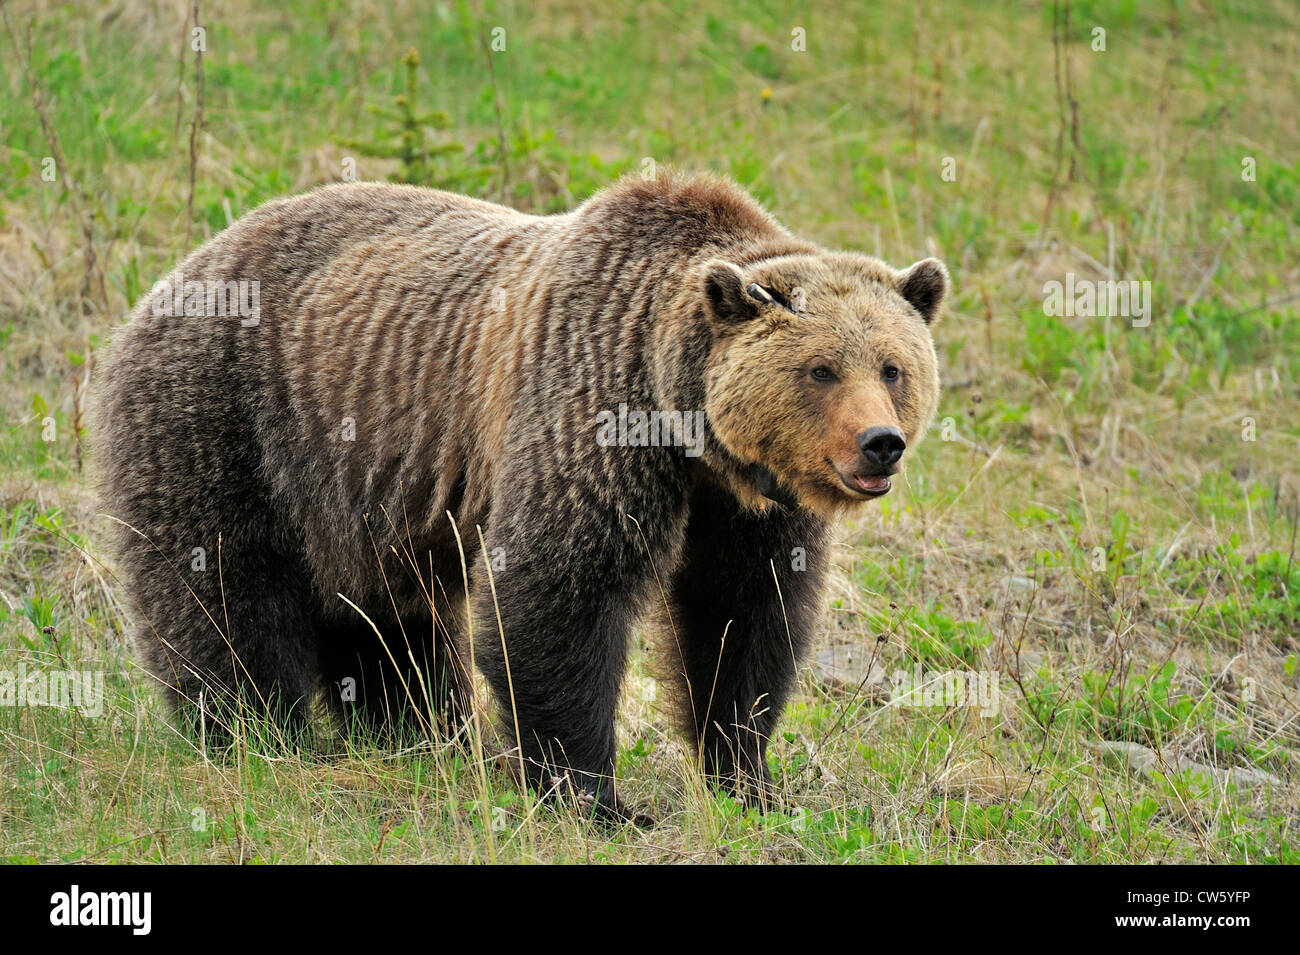 A wild adult female grizzly bear - Stock Image